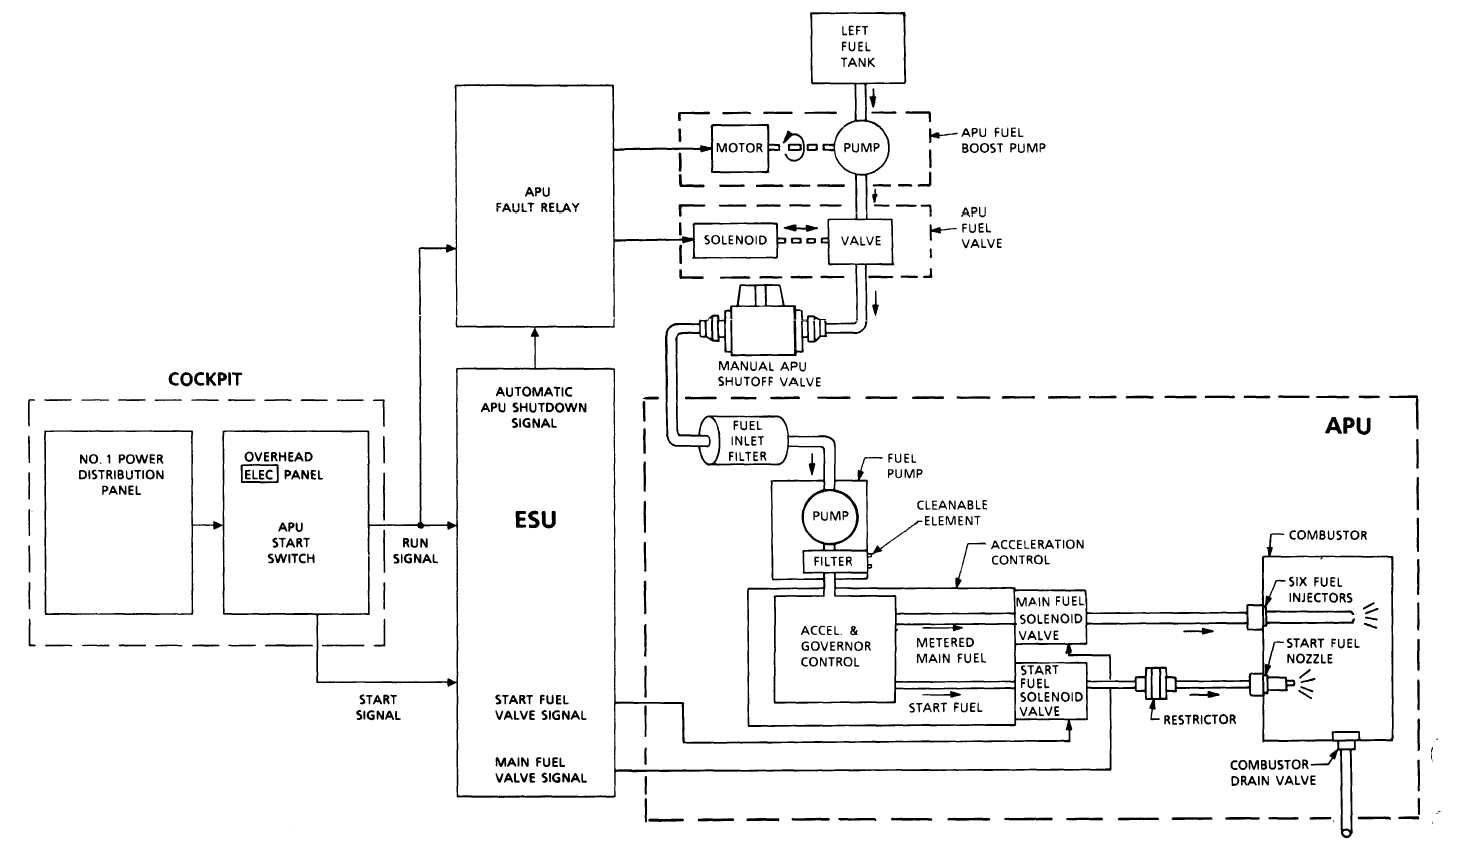 Apu Fuel System Block Diagram